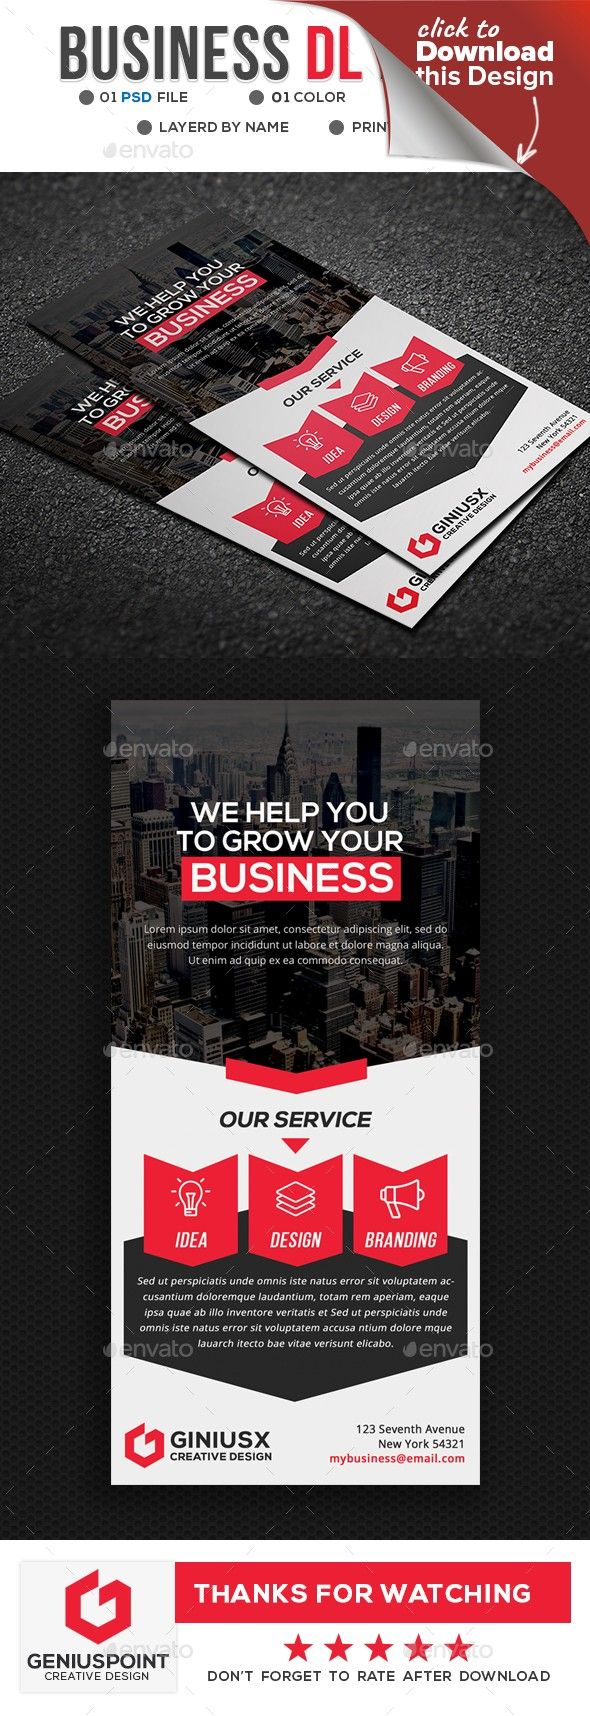 Business DL Flyer | Flyer printing, Flyer template and Business cards